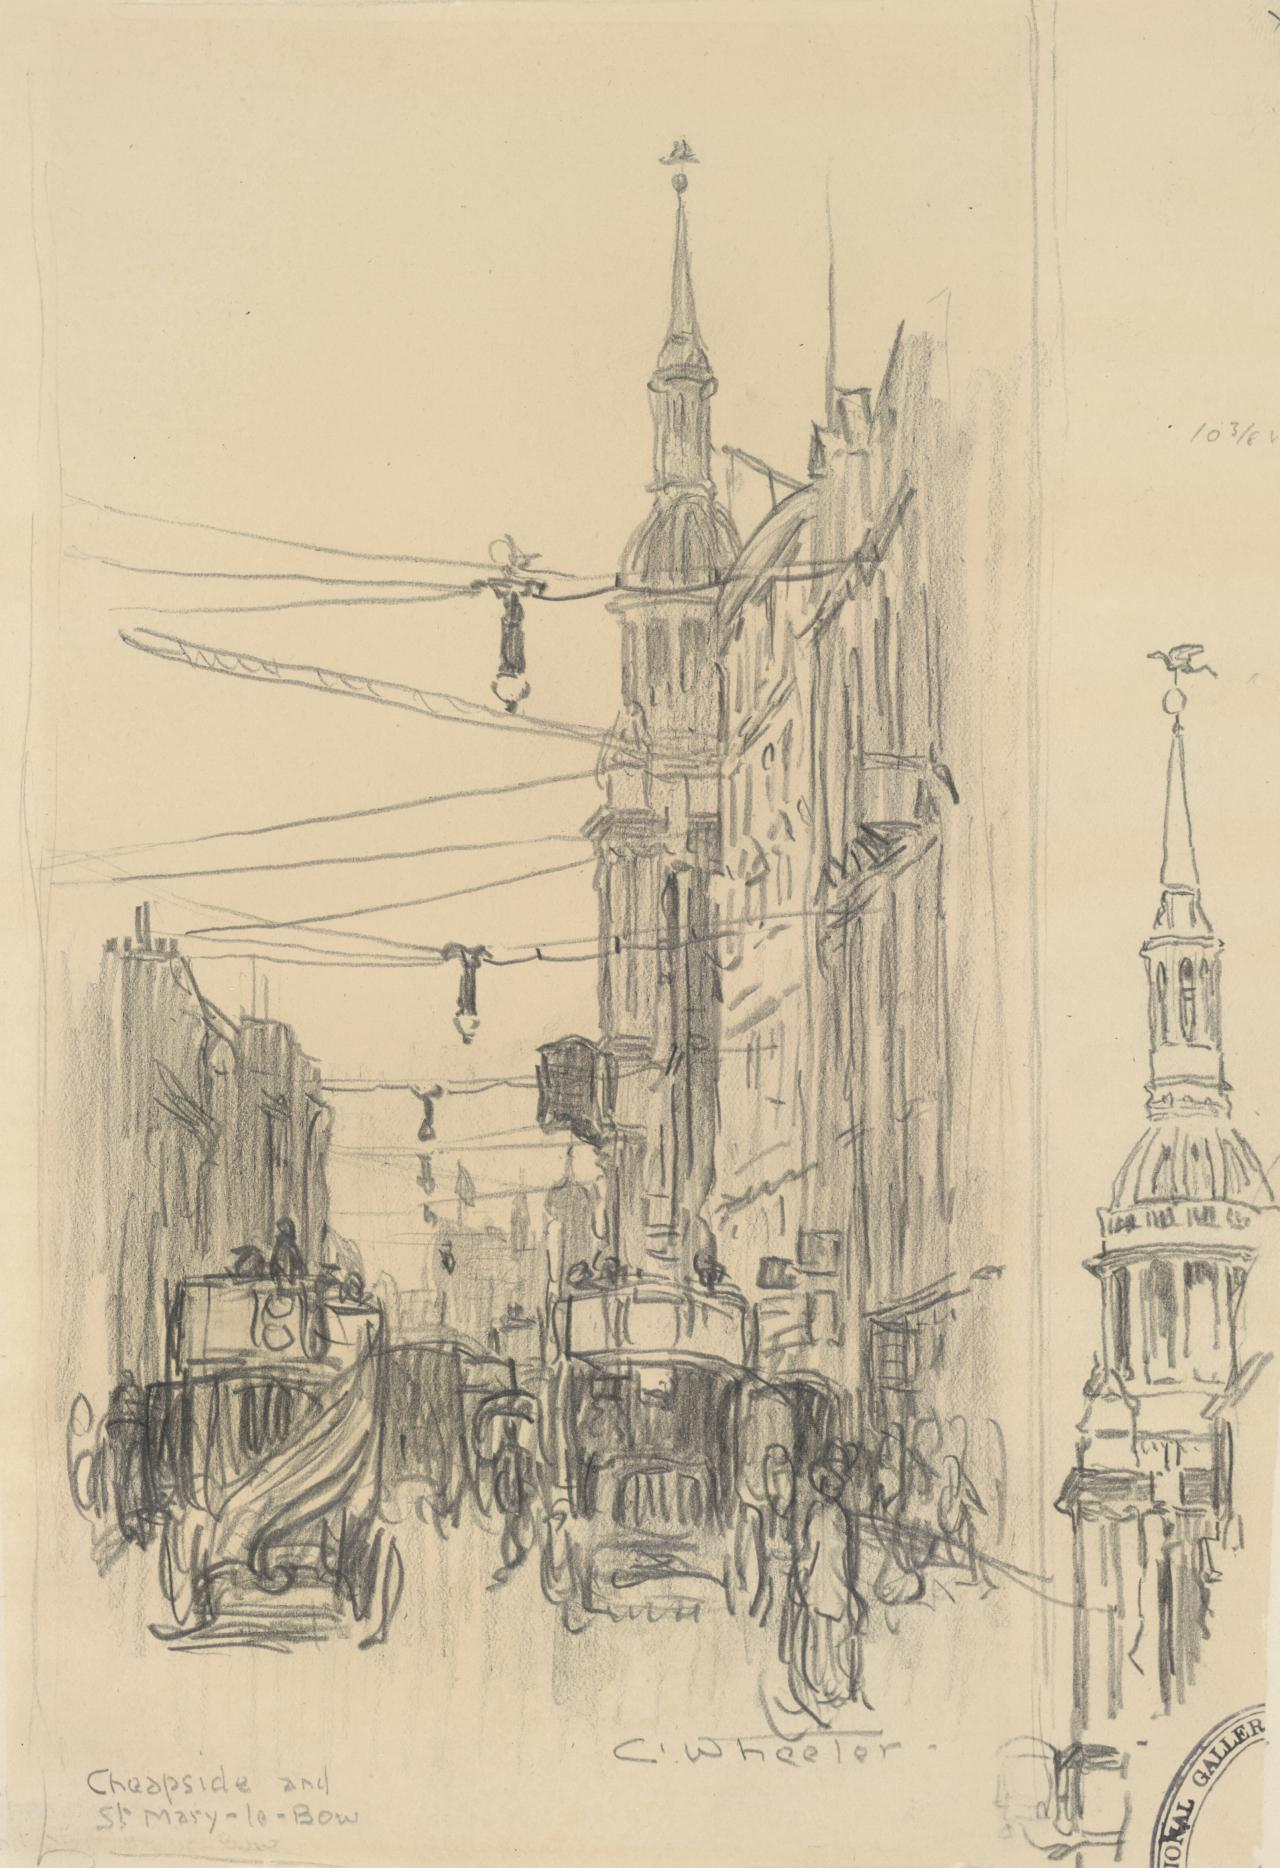 Cheapside and St Mary-le-Bow